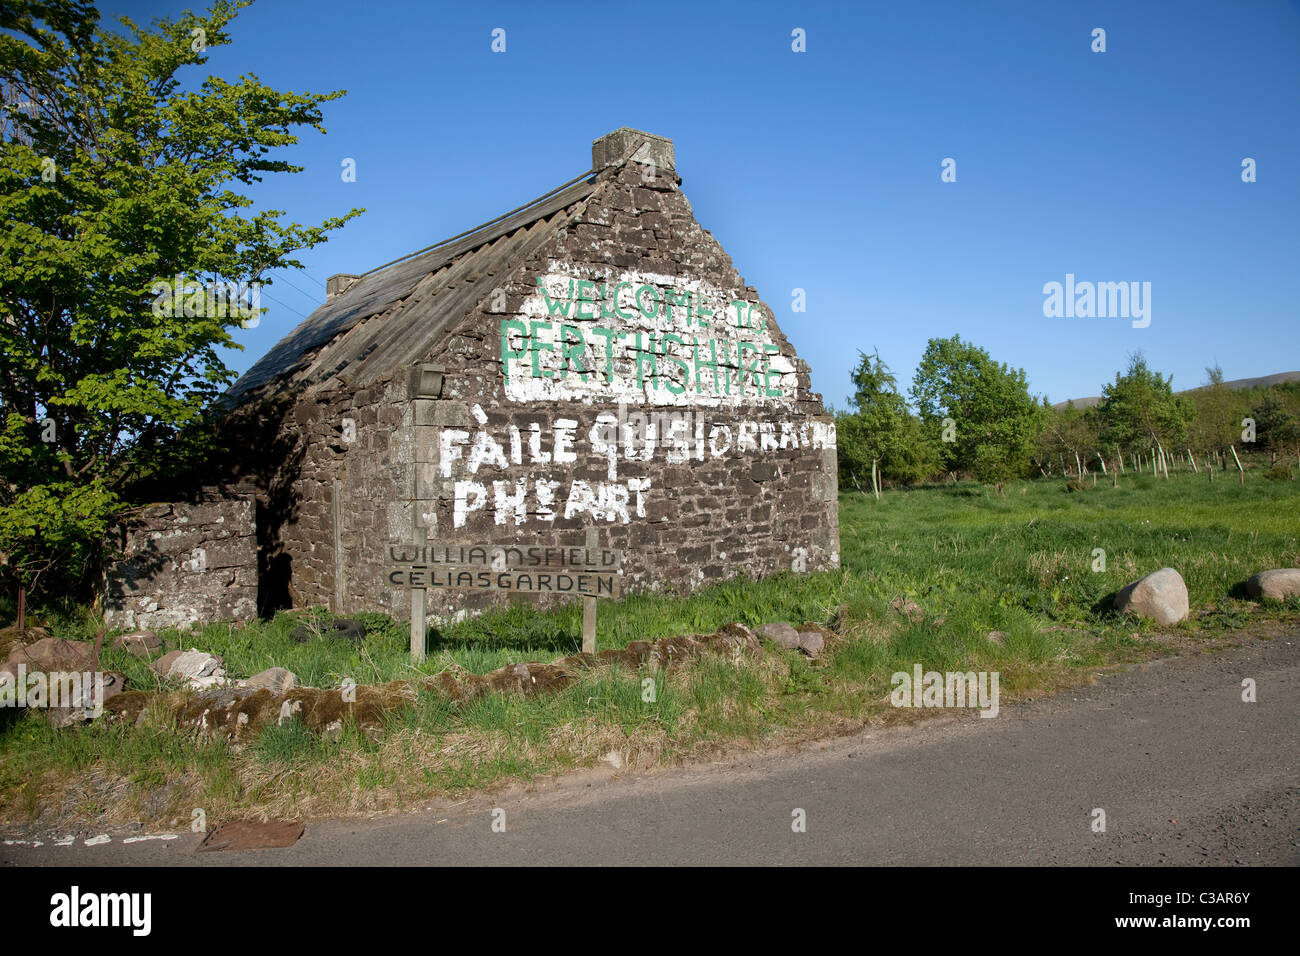 Welcome To Perthshire Abandoned Scottish Country Cottage With Slogan Free Scotland In Gaelic Painted